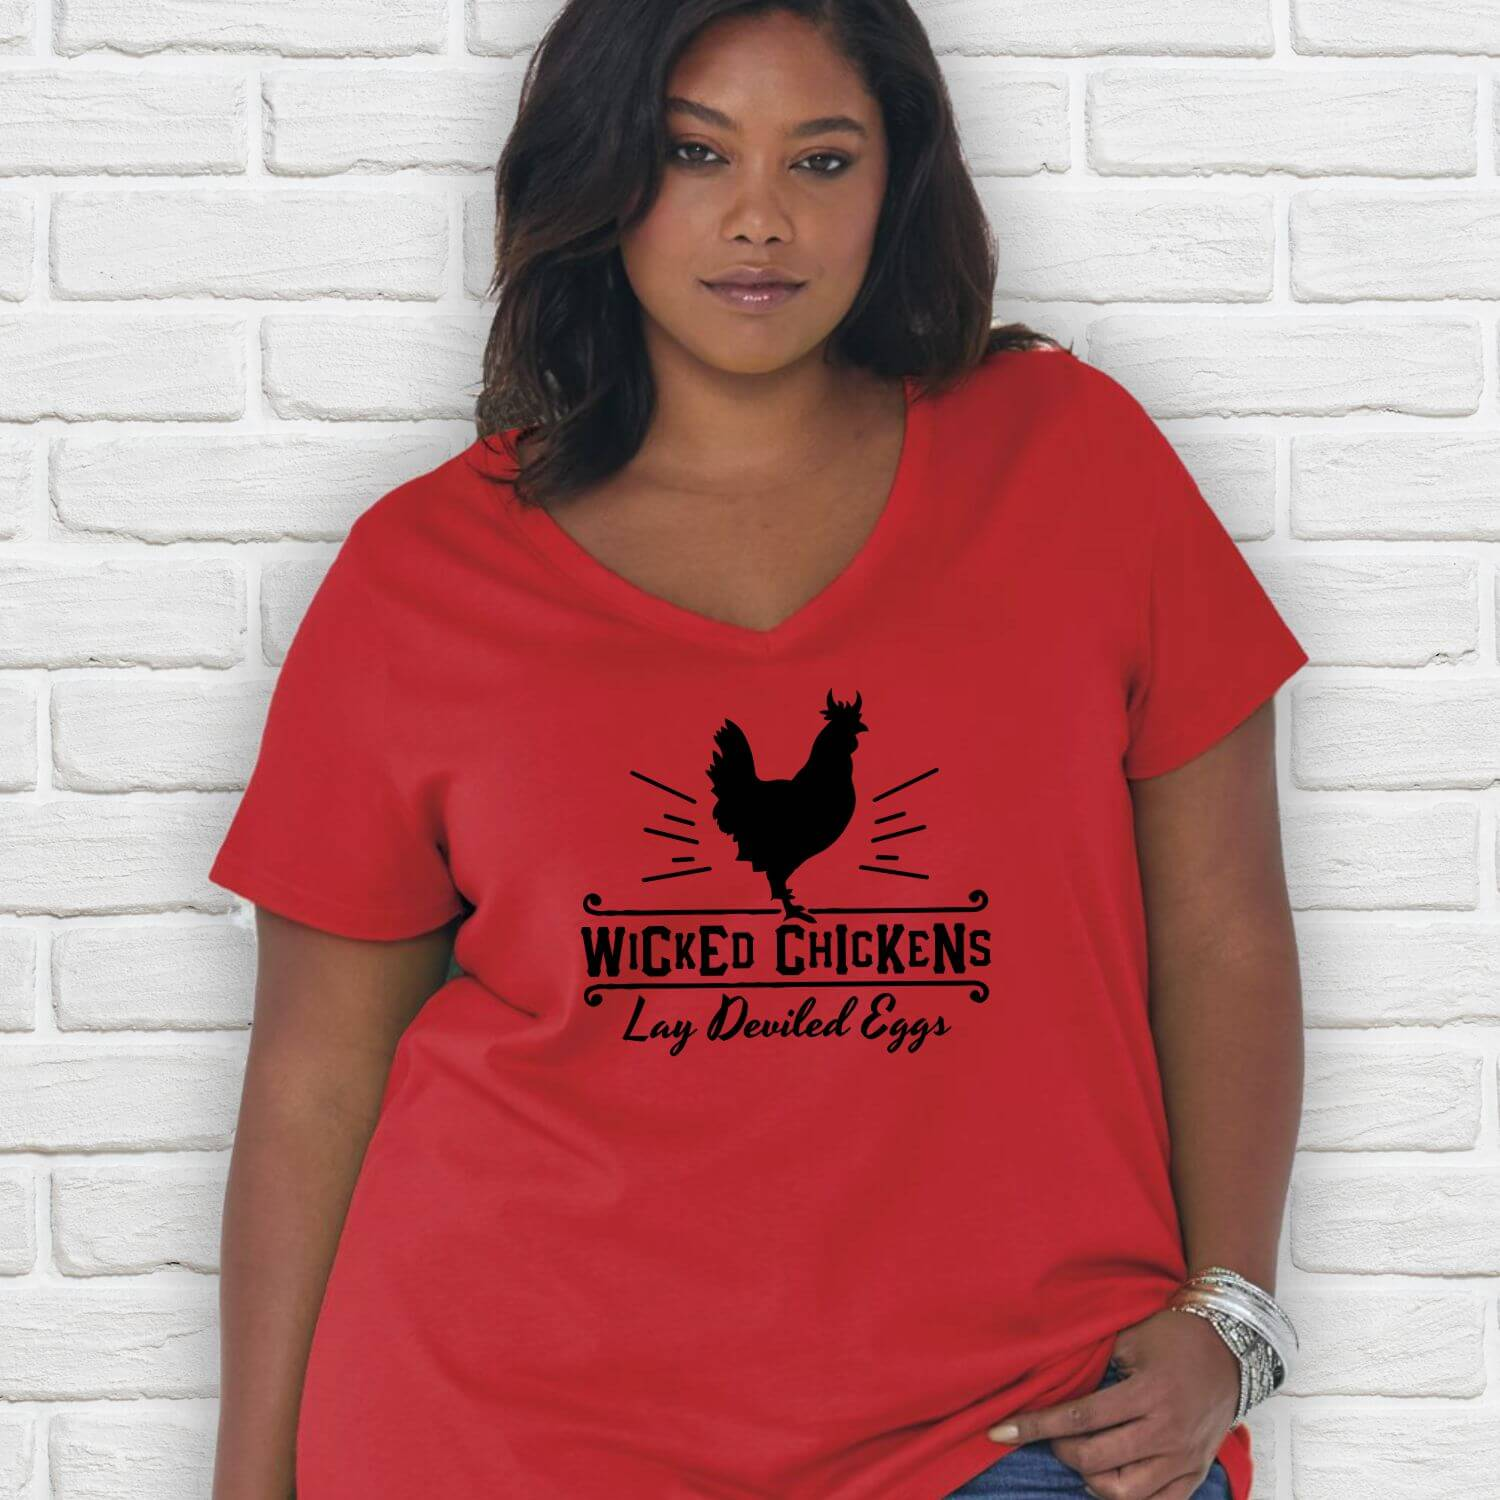 Wicked Chickens-Red-Curvy-Vneck